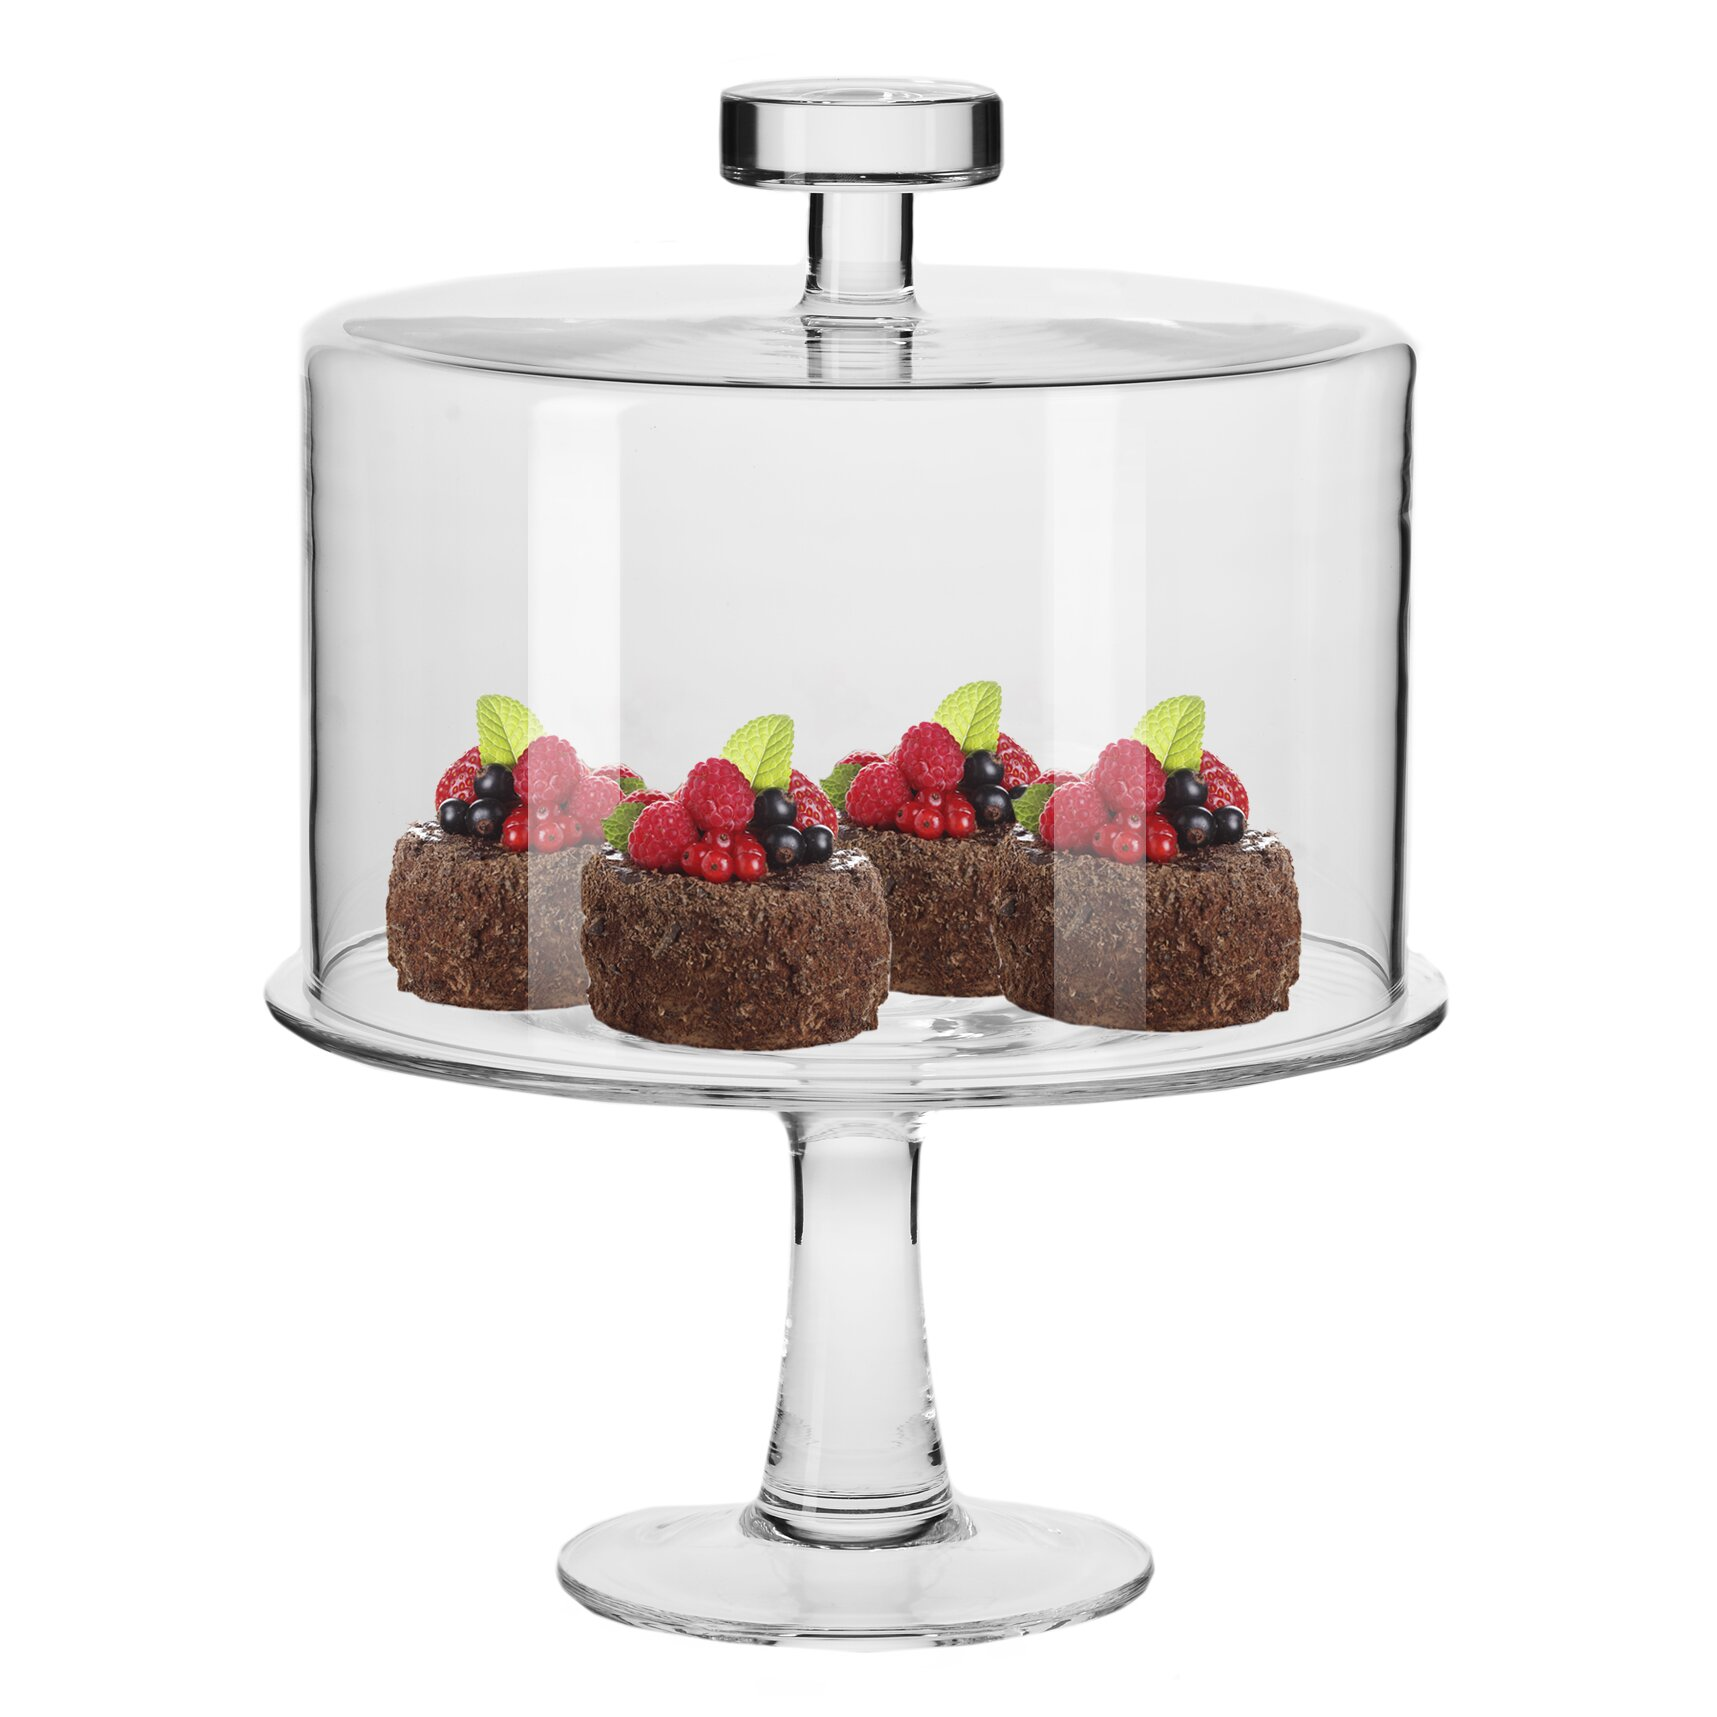 Krosno Handmade Gl June Covered Cake Stand Set 11in Target  sc 1 st  Migrant Resource Network & Cake Stand With Glass Cover | Migrant Resource Network